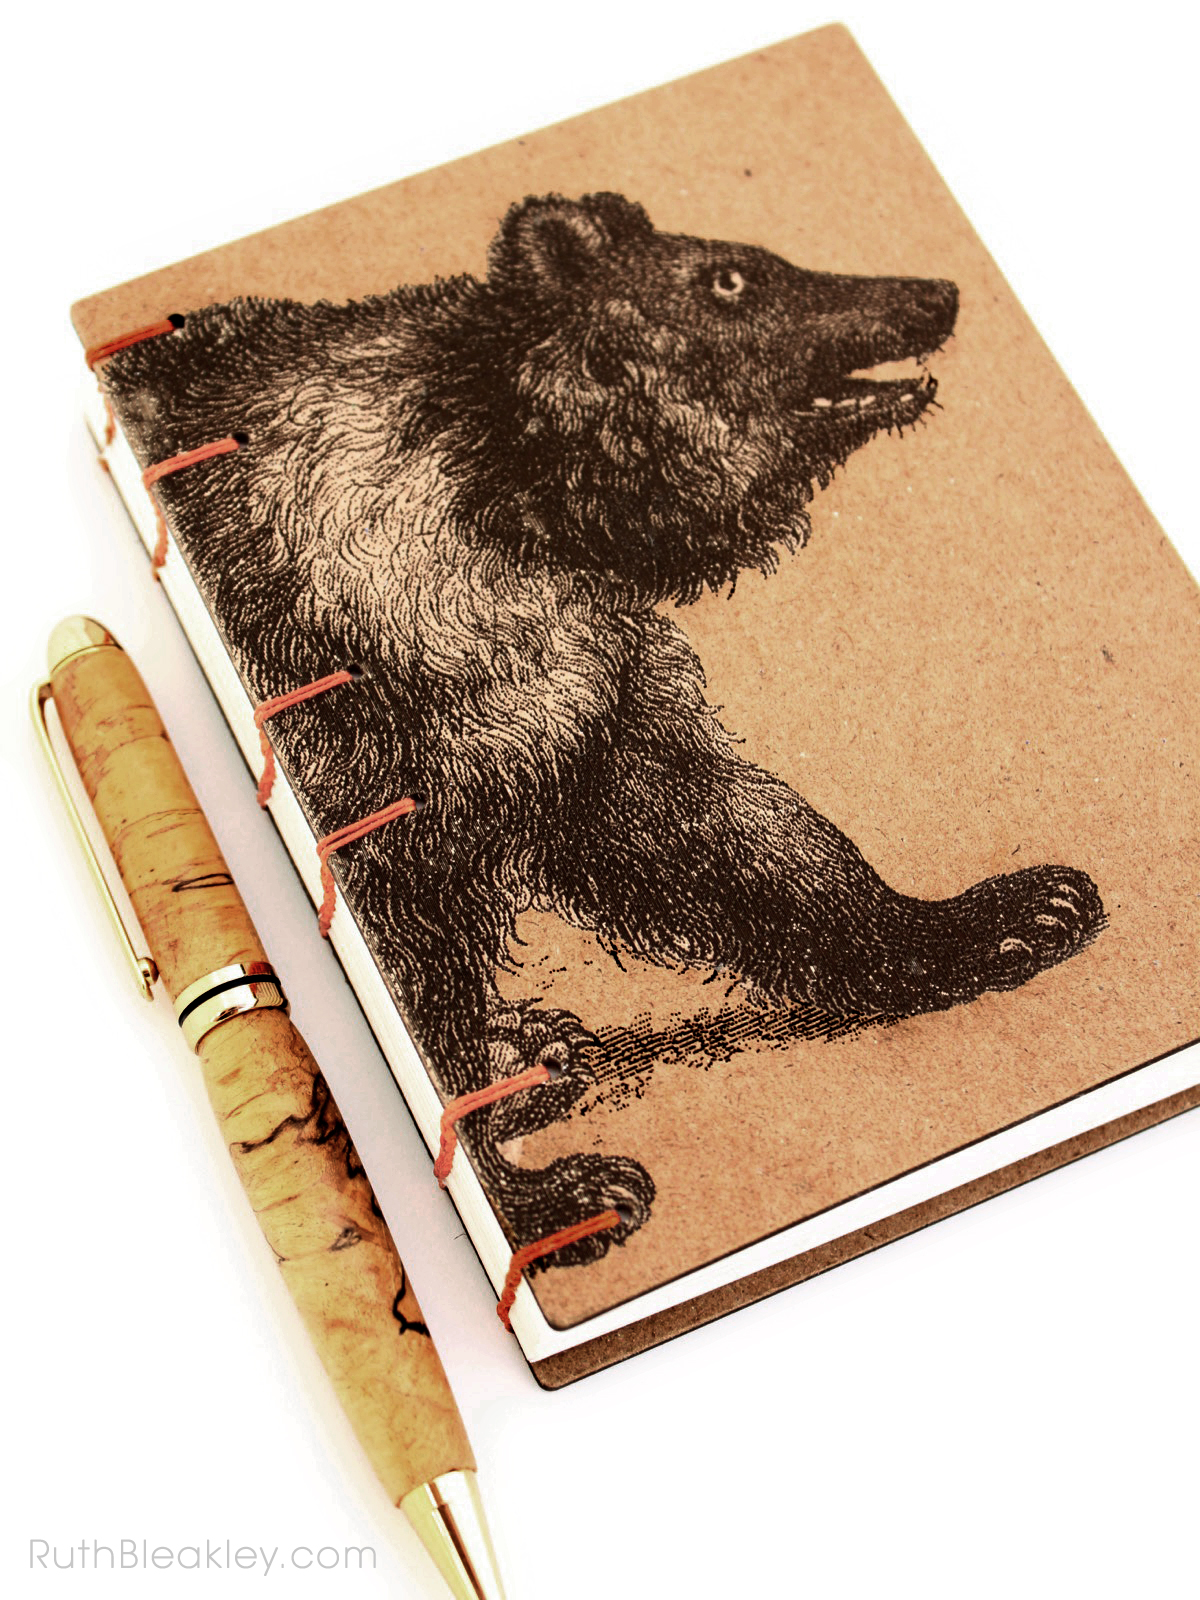 Bear Journal handmade by American book artist Ruth Bleakley - 3